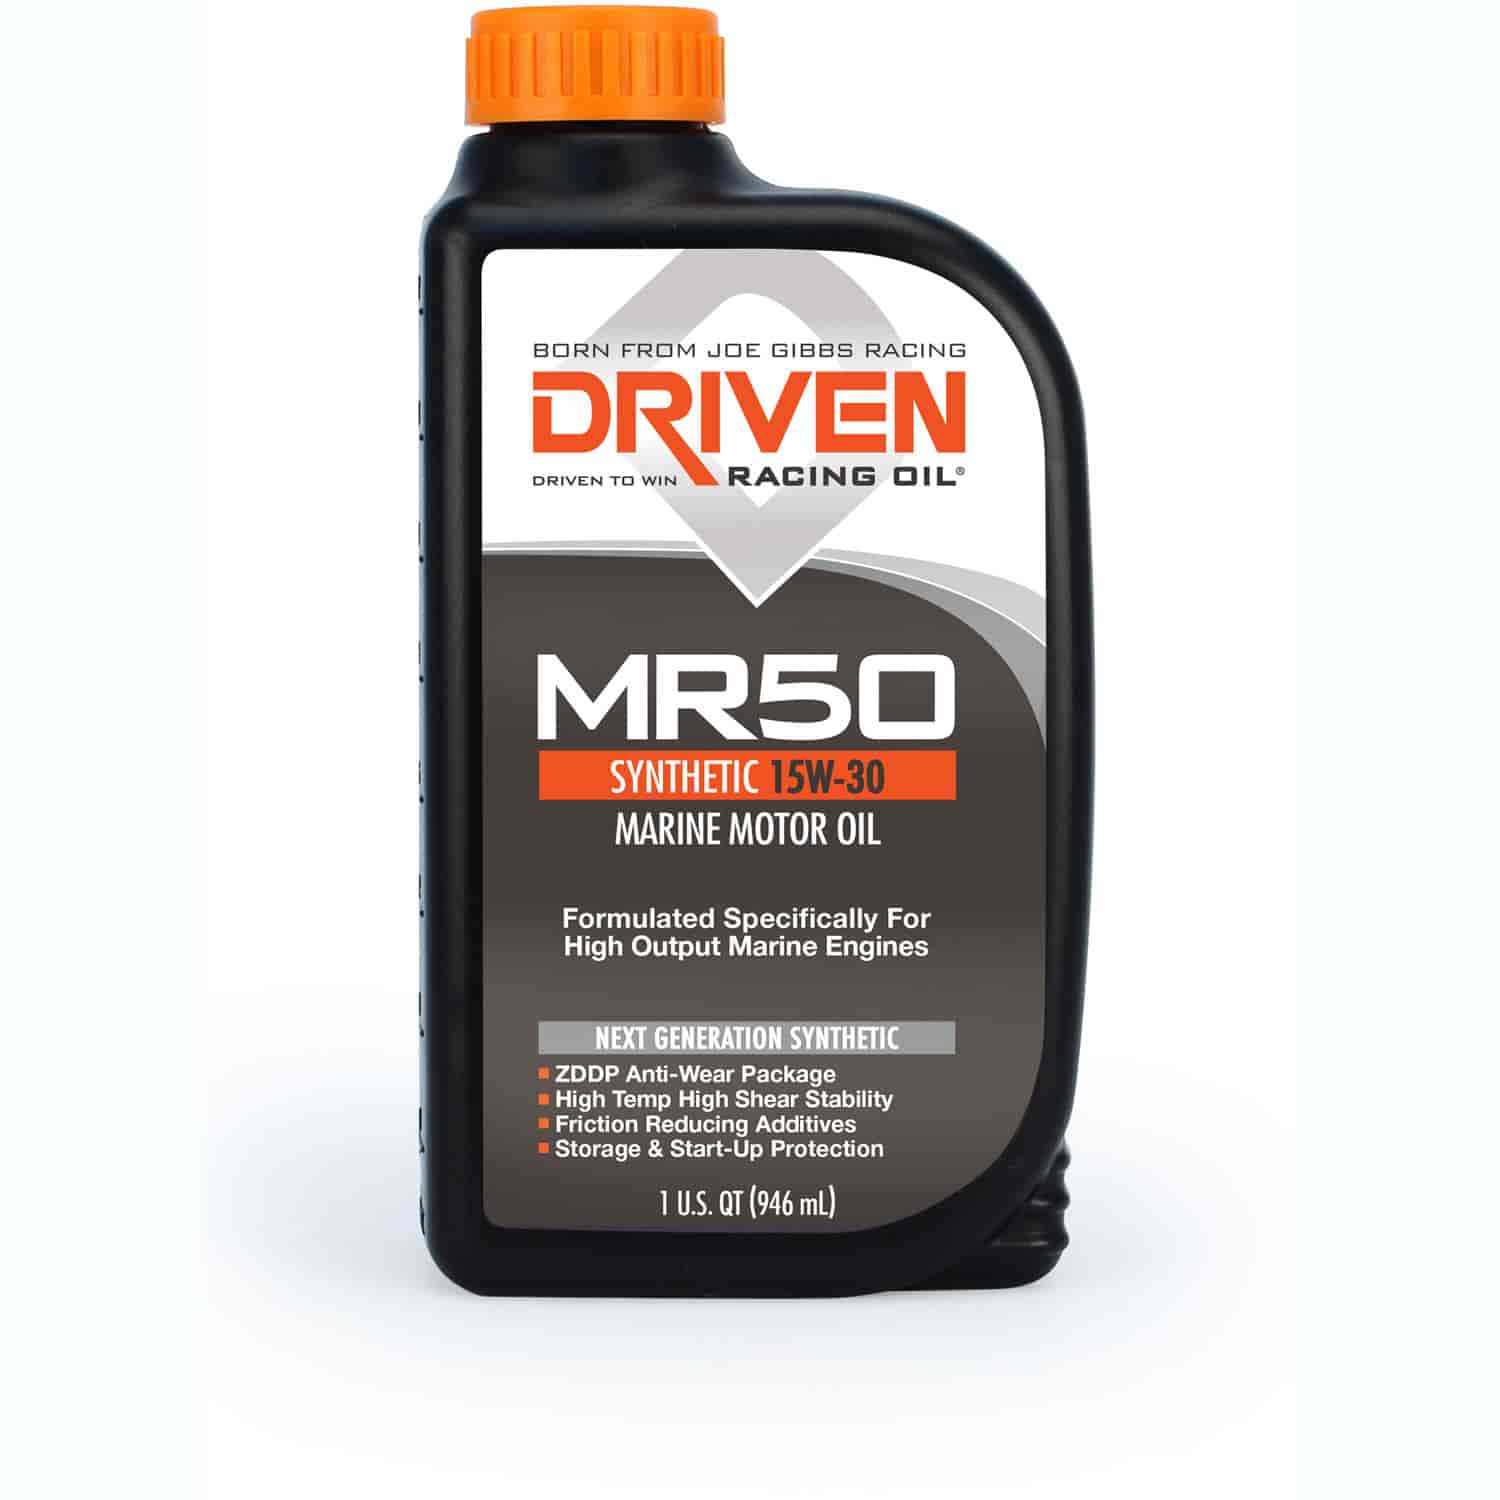 Driven Racing Oil 02606 - Driven Synthetic Performance Marine Oil